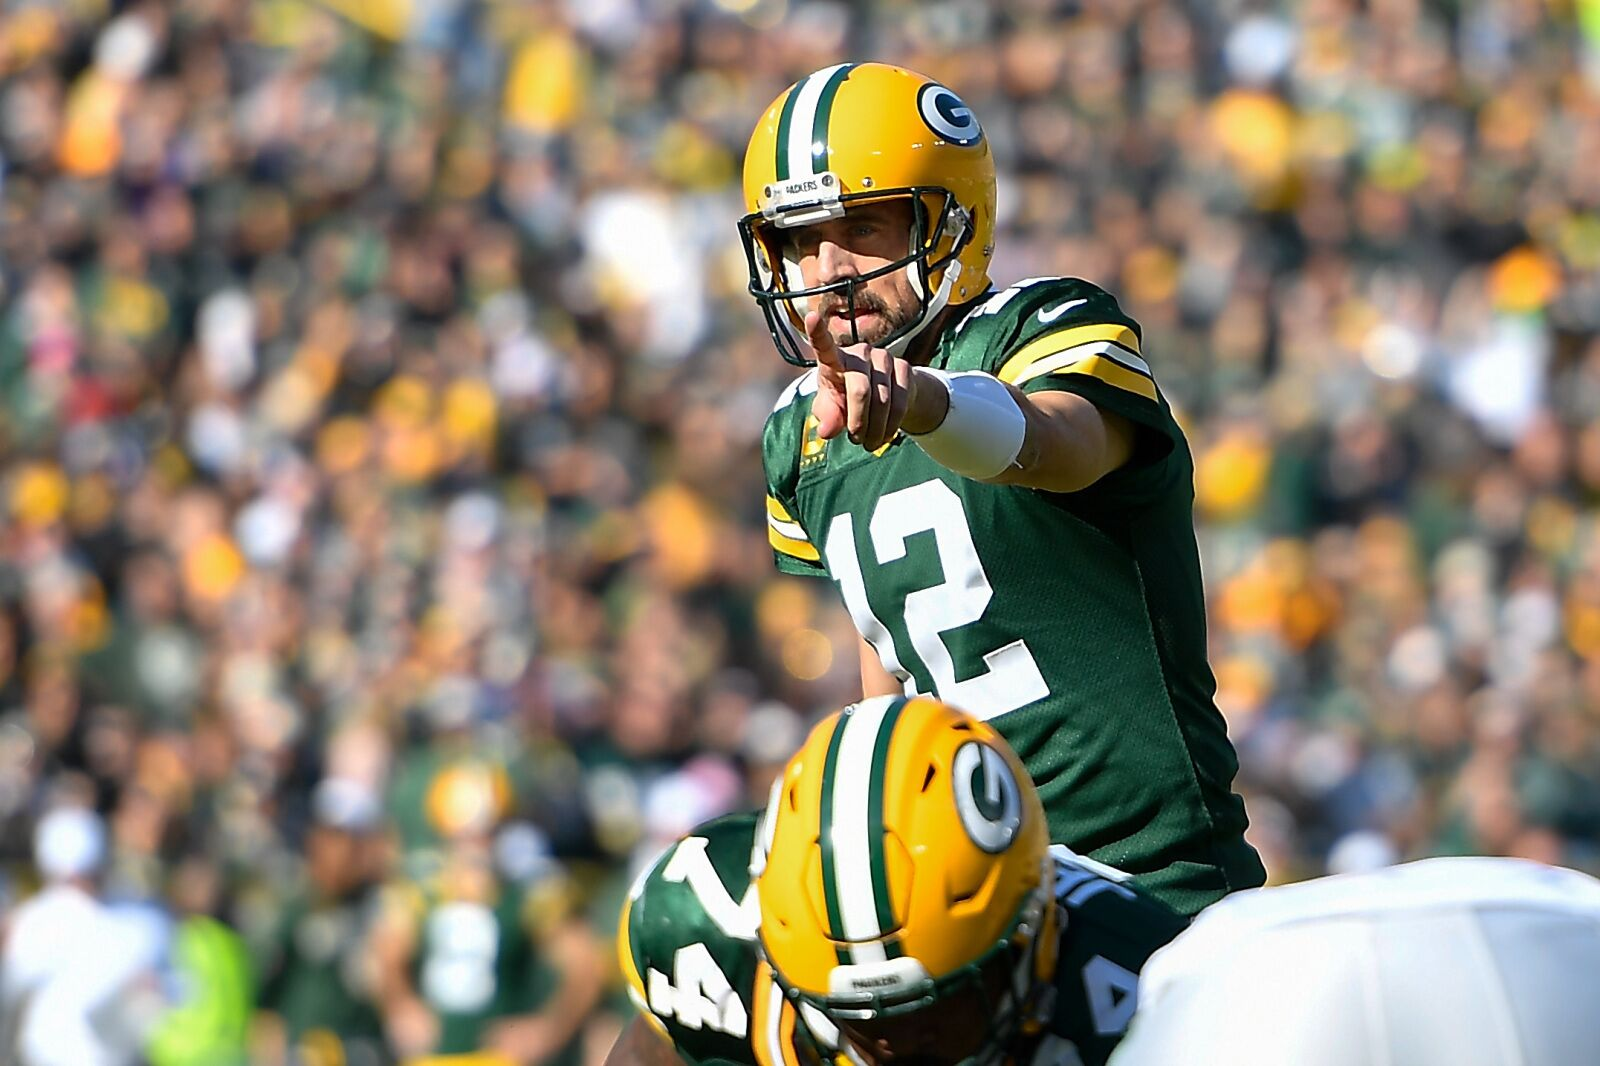 NFL Week 8, 2019: 20 Bold predictions to consider